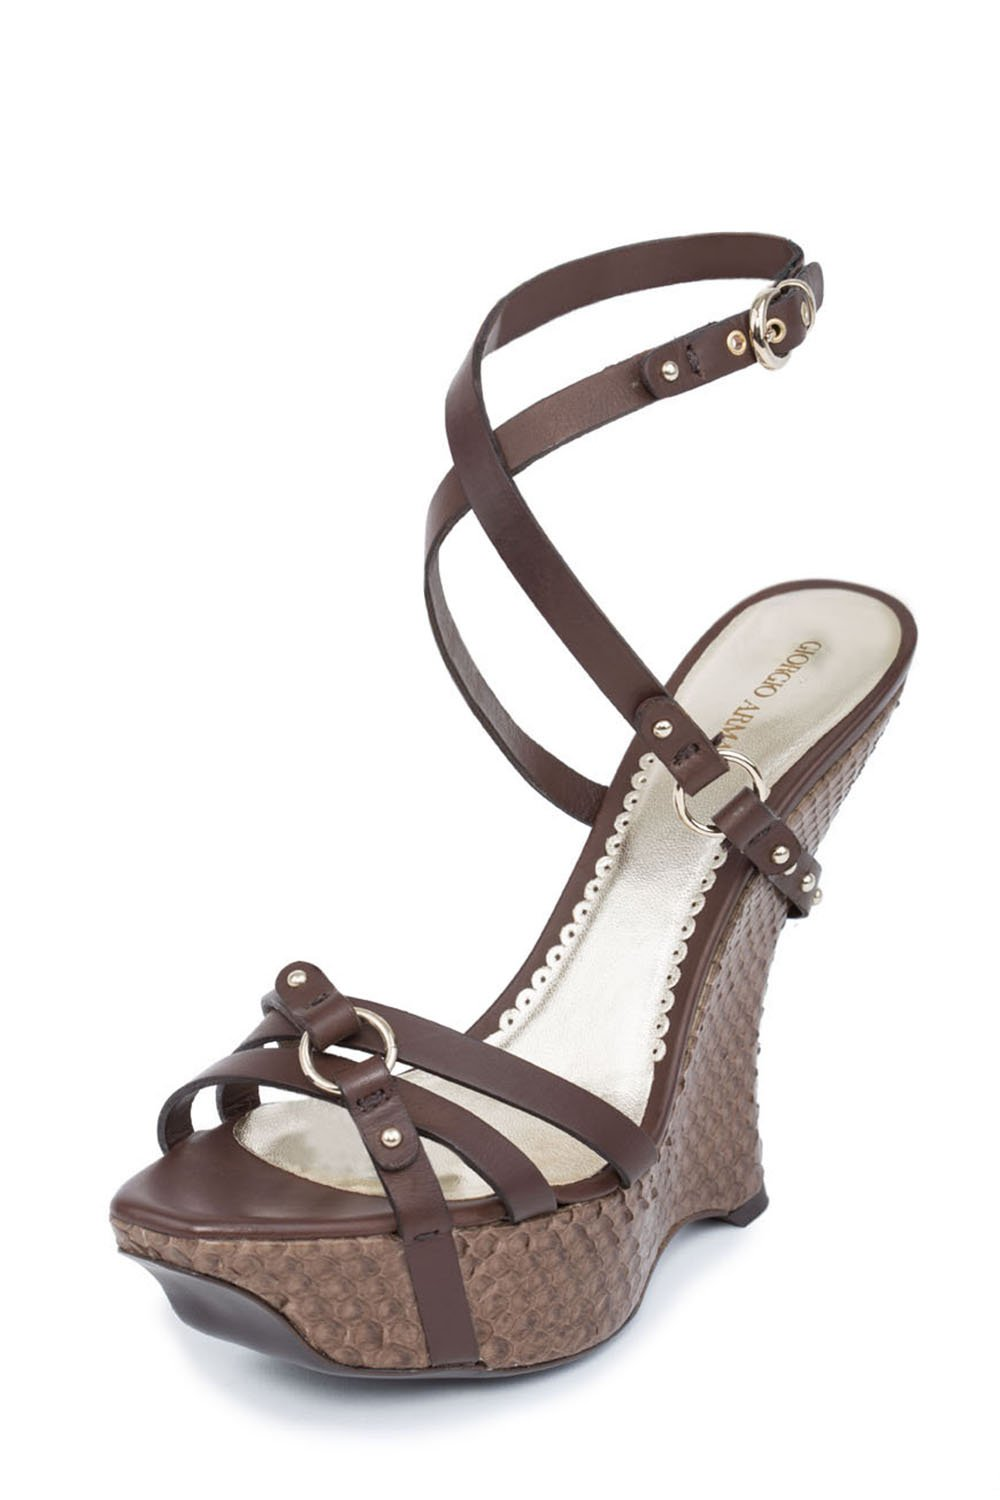 GIORGIO ARMANI Details Women Brown Snake Embossed Platform Wedge Strappy Sandals Shoes B01CI92Q0W 6.5 B(M) US|Brown